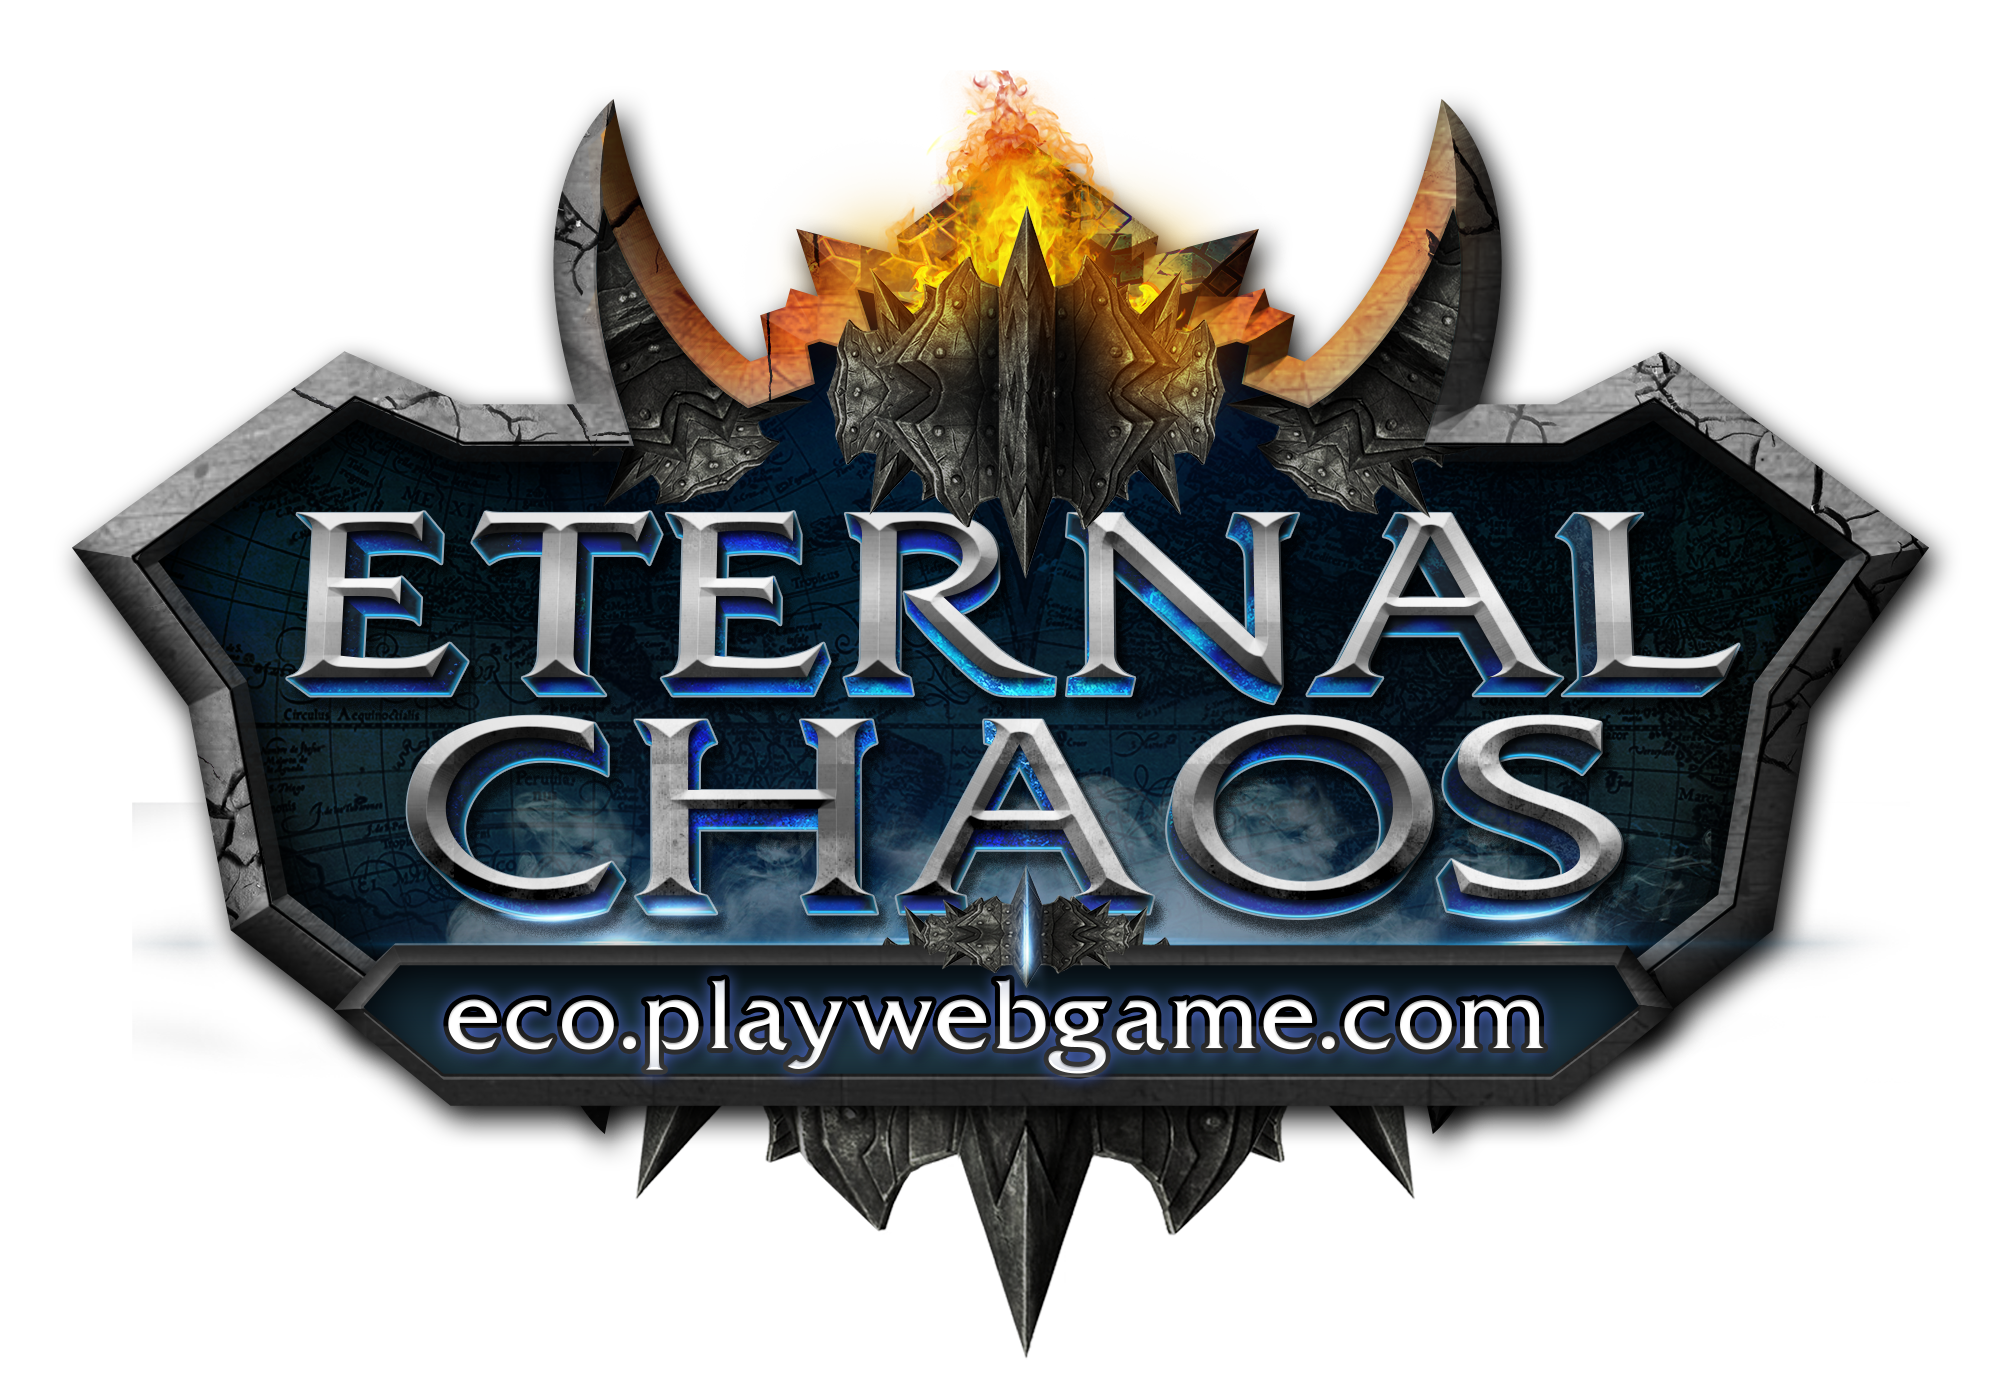 PlayWebGame has launched its new game Eternal Chaos Online (ECO